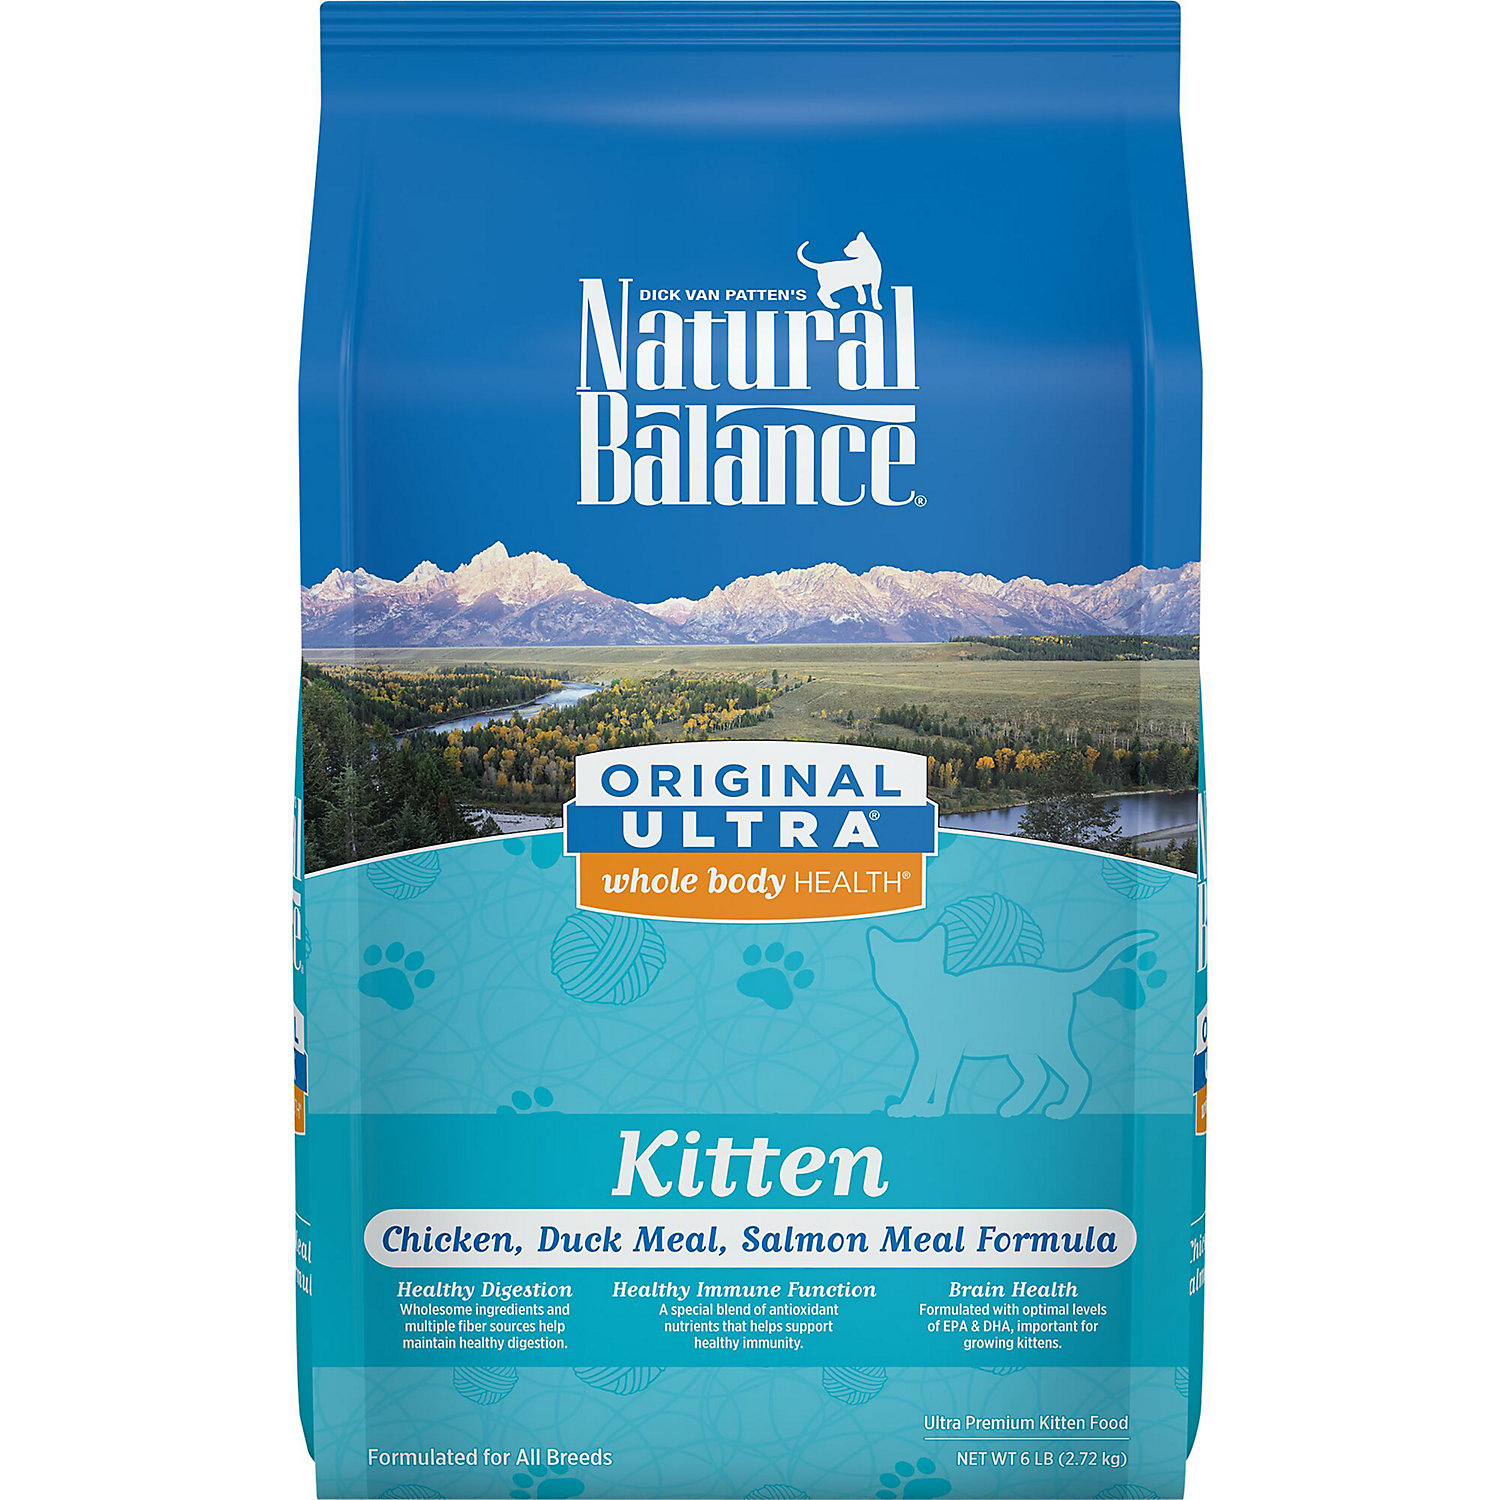 Natural Balance Original Ultra Whole Body Health Chicken Duck Meal Salmon Meal Kitten Food 6 Lbs.